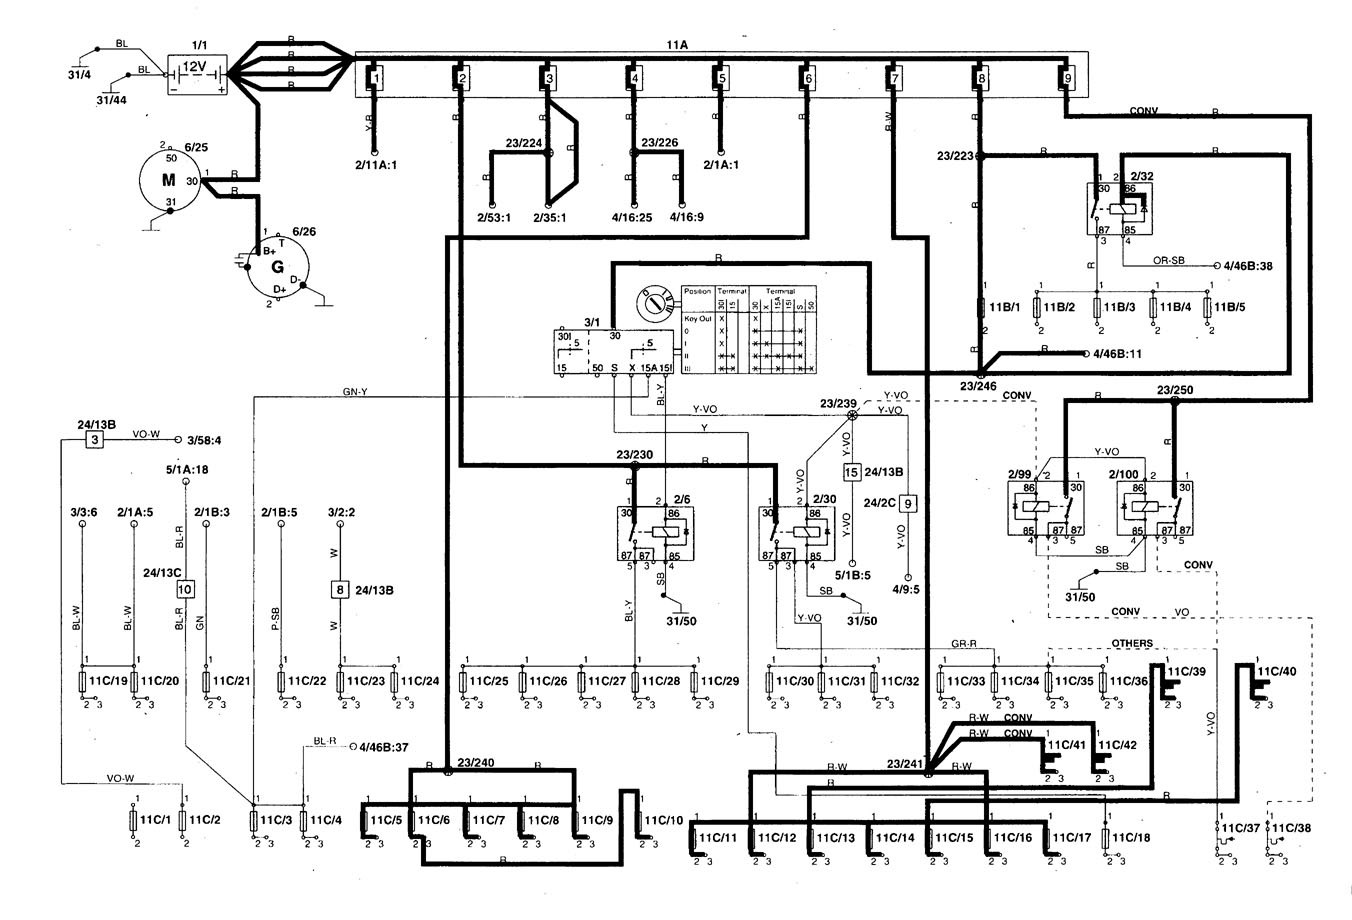 Diagram Hyundai I40 Wiring Diagram Full Version Hd